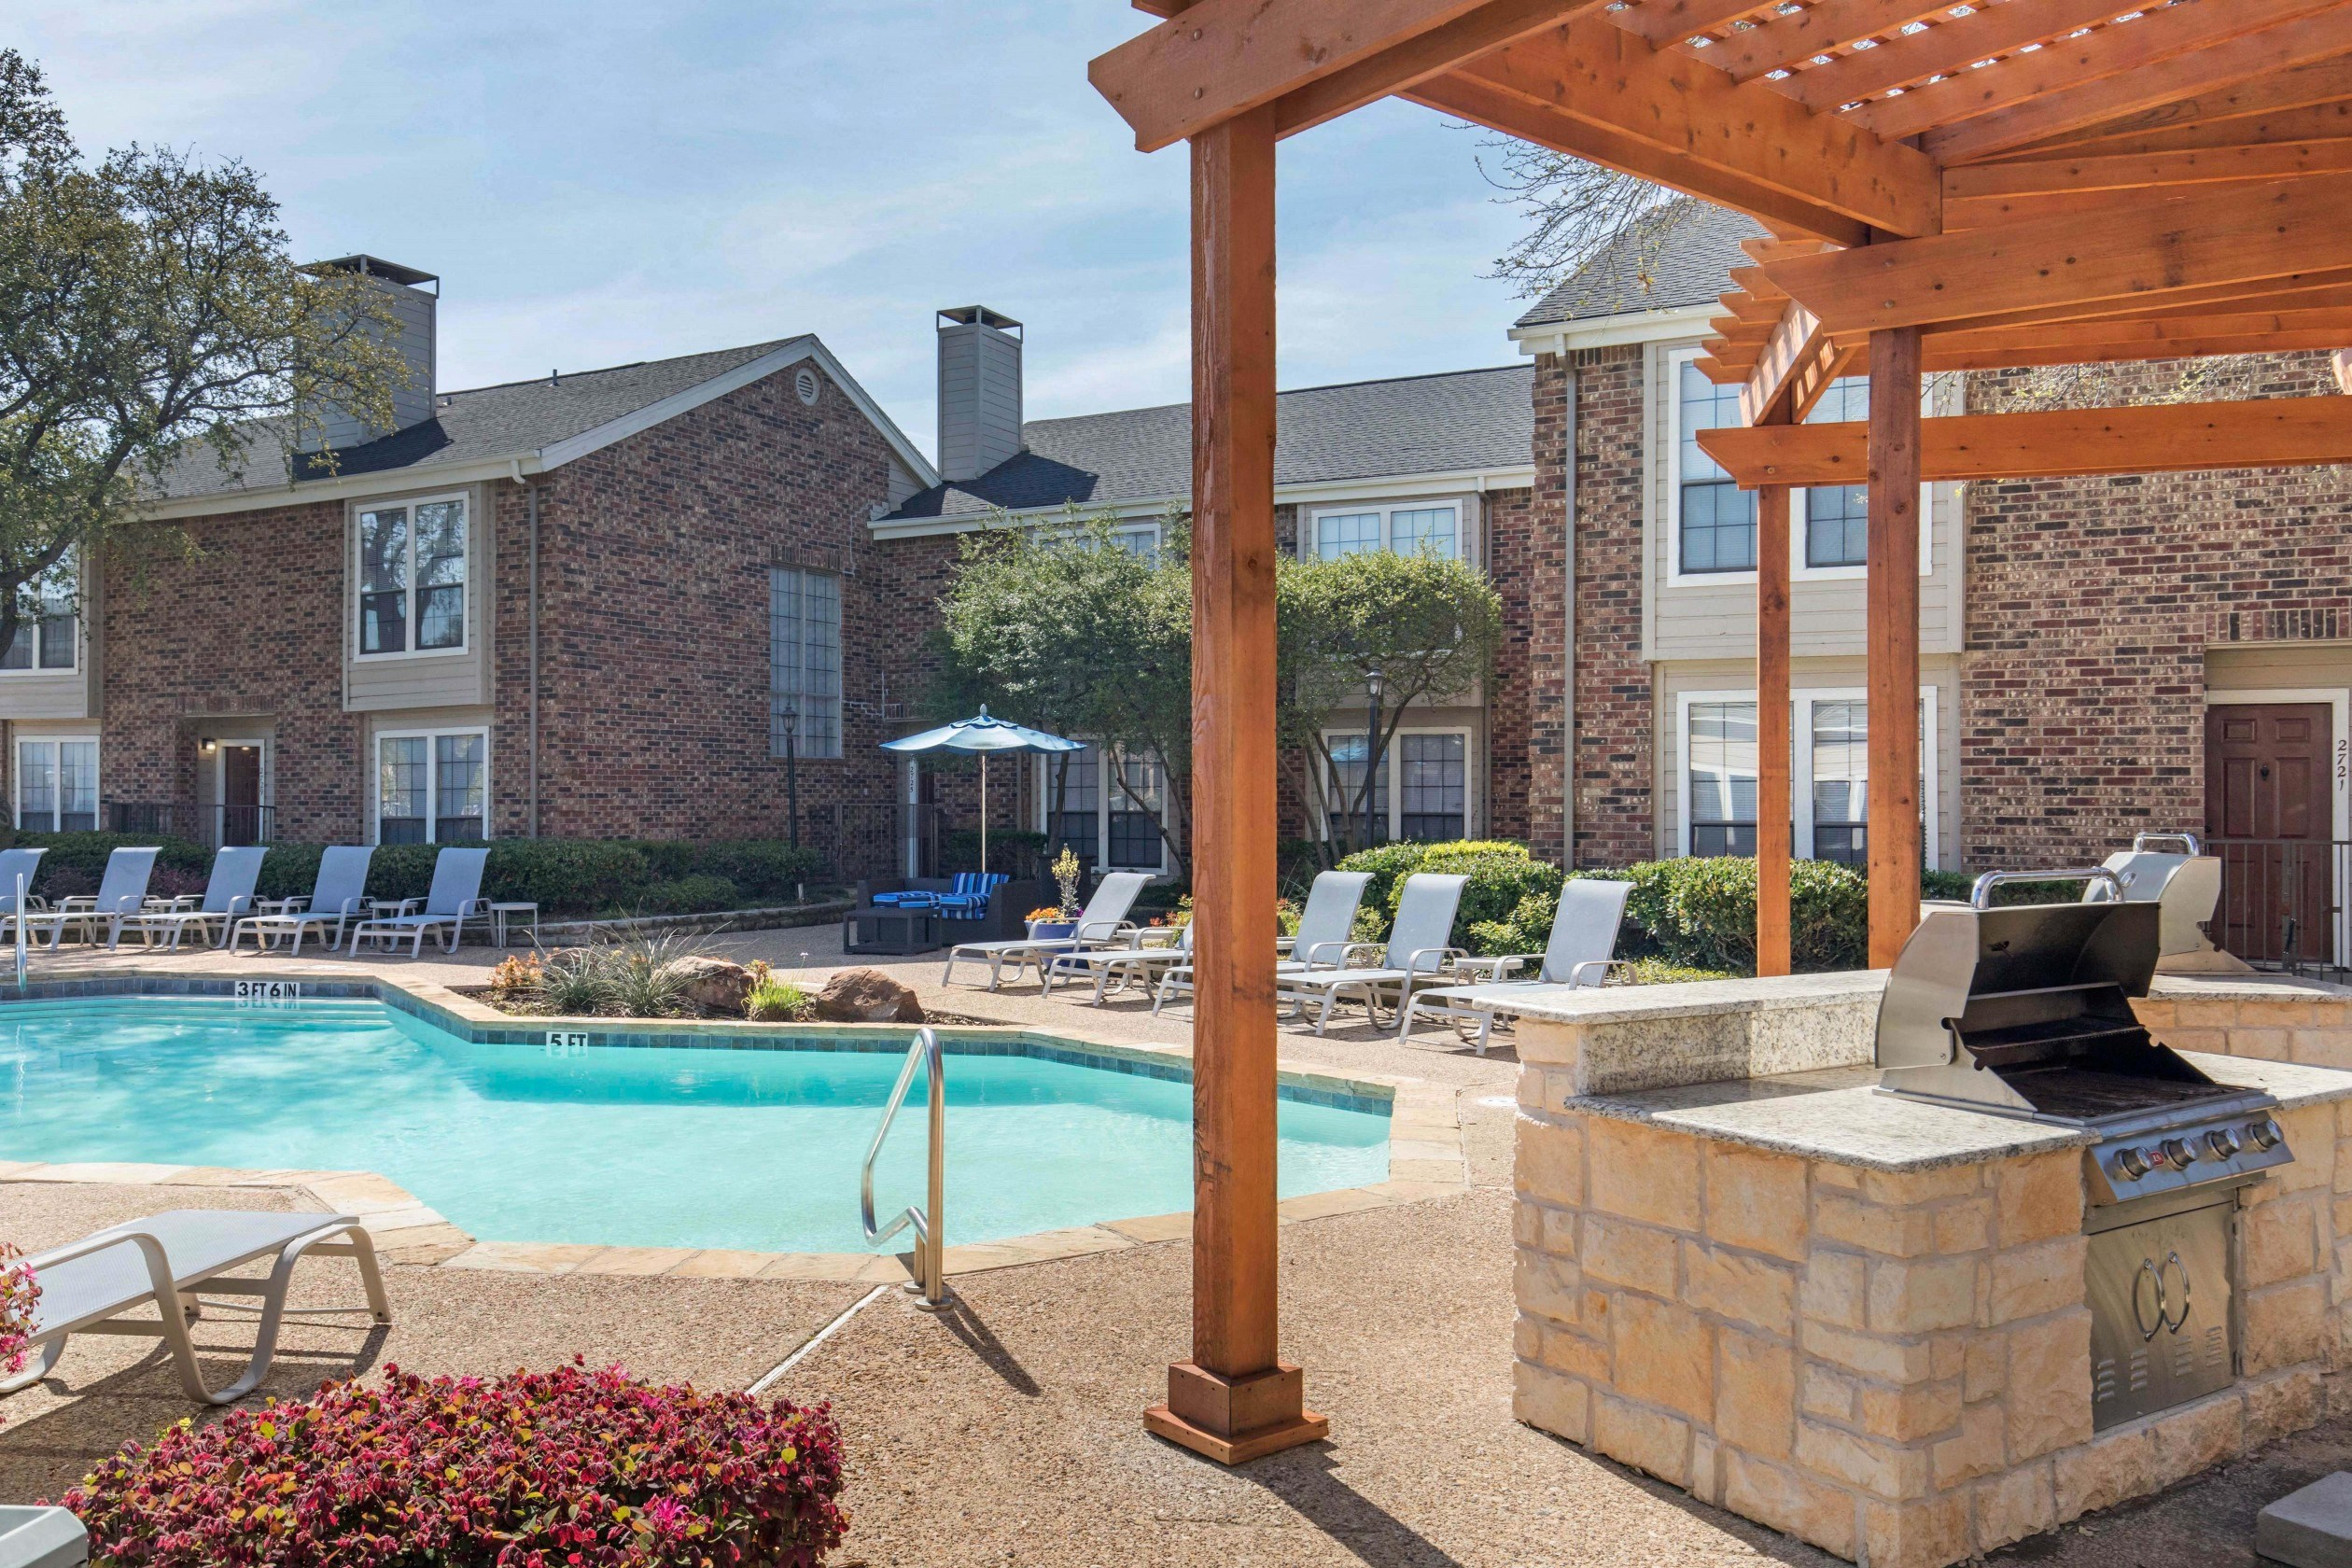 Sparkling blue swimming pool with wooden pergola and grilling station